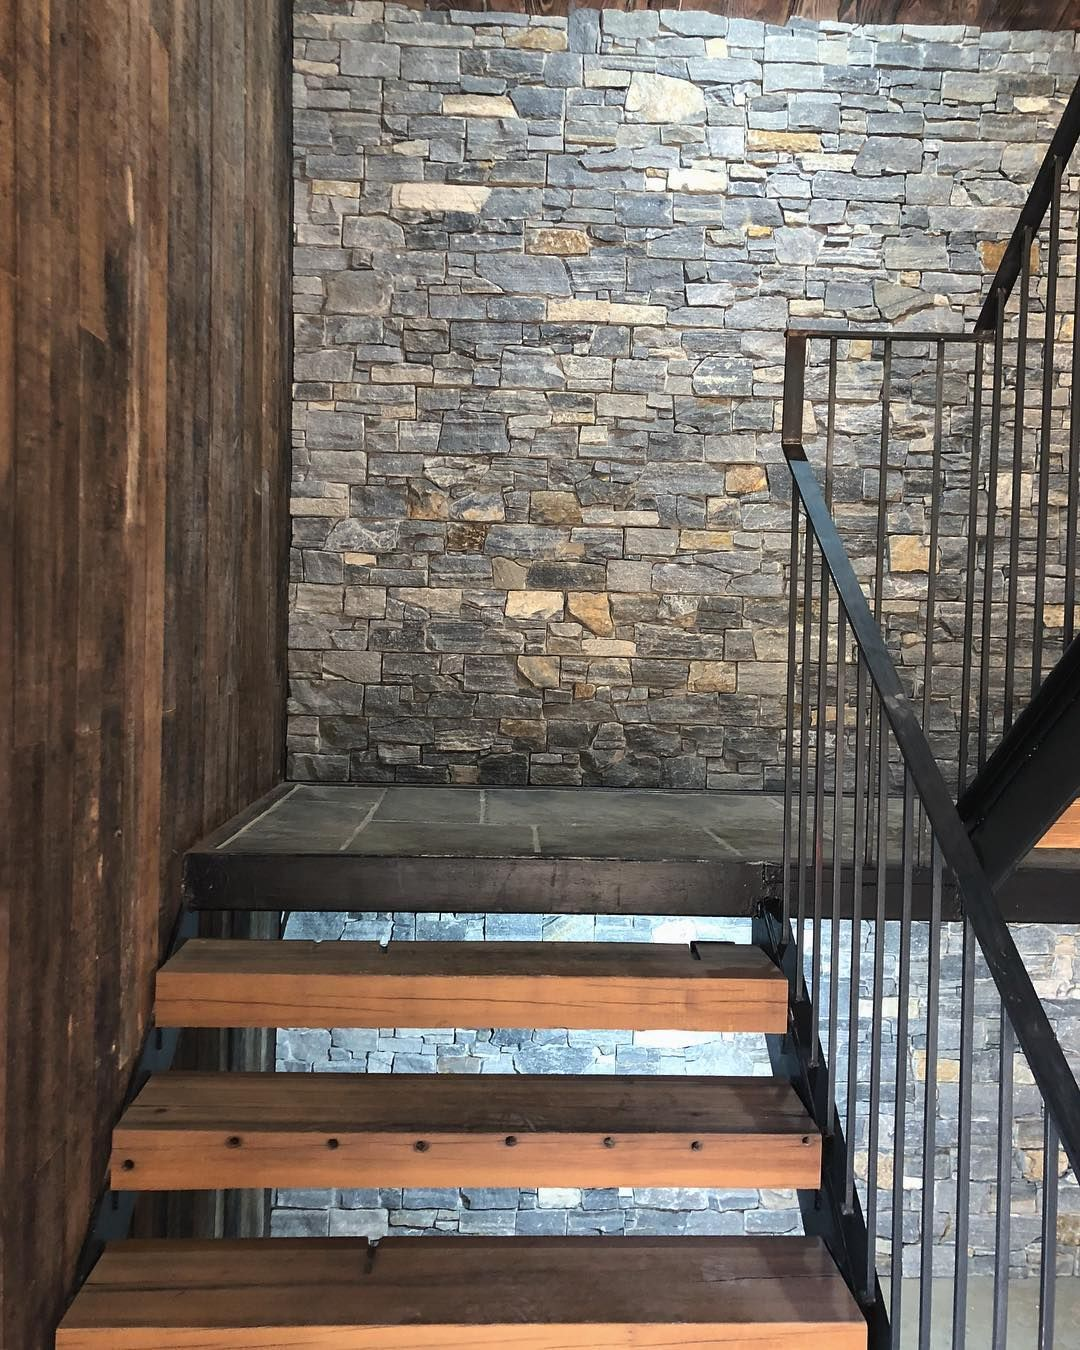 Introducing Natural Stone Cladding At South Planks Available In A Range Of Beautiful Styles And Colours Fro Stone Cladding Natural Stone Cladding Cladding